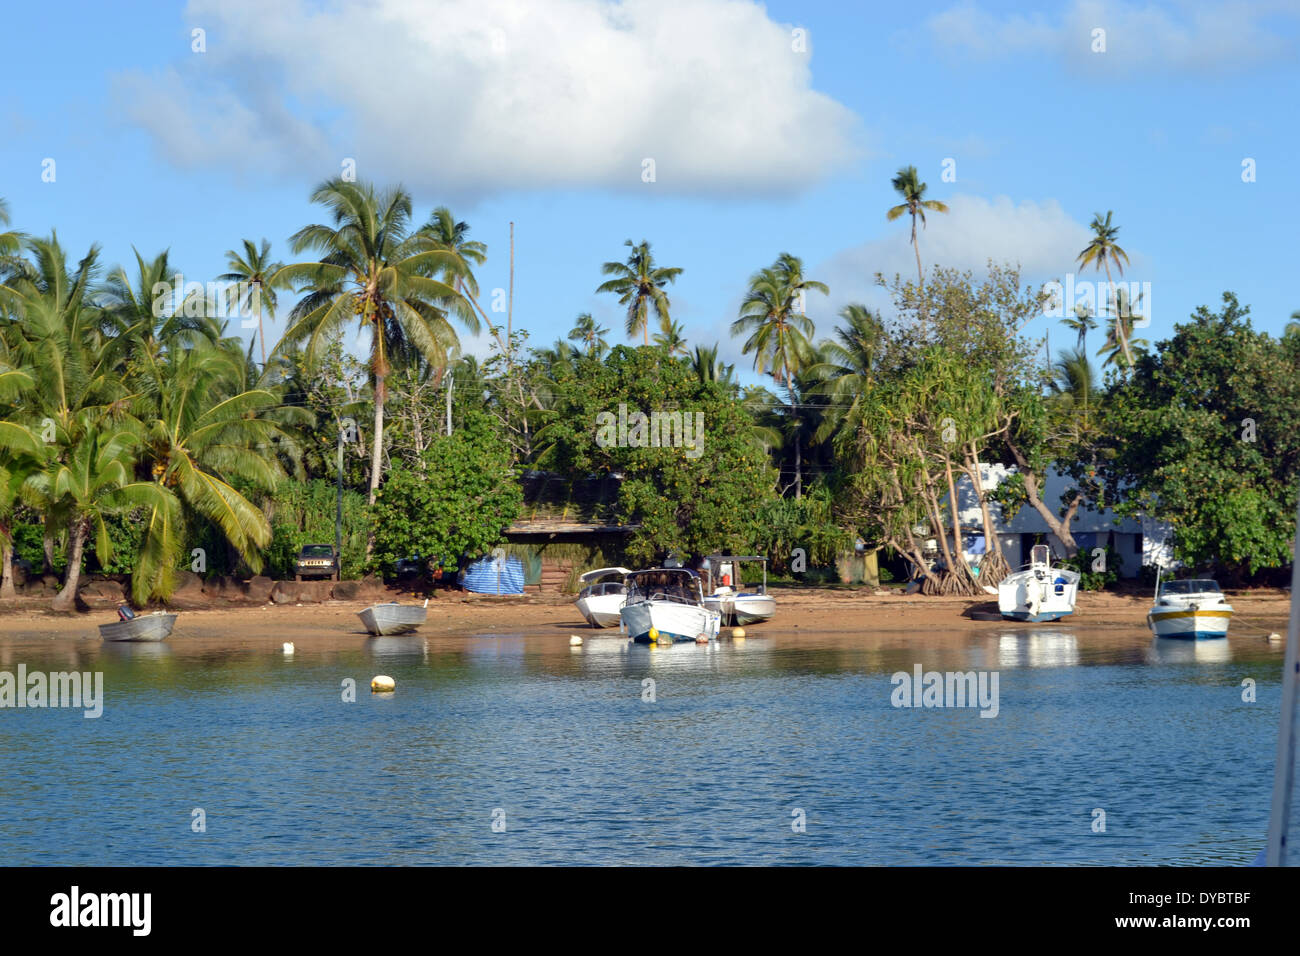 Halalo Village, Mua district, Wallis Island, Wallis and Futuna, South Pacific - Stock Image